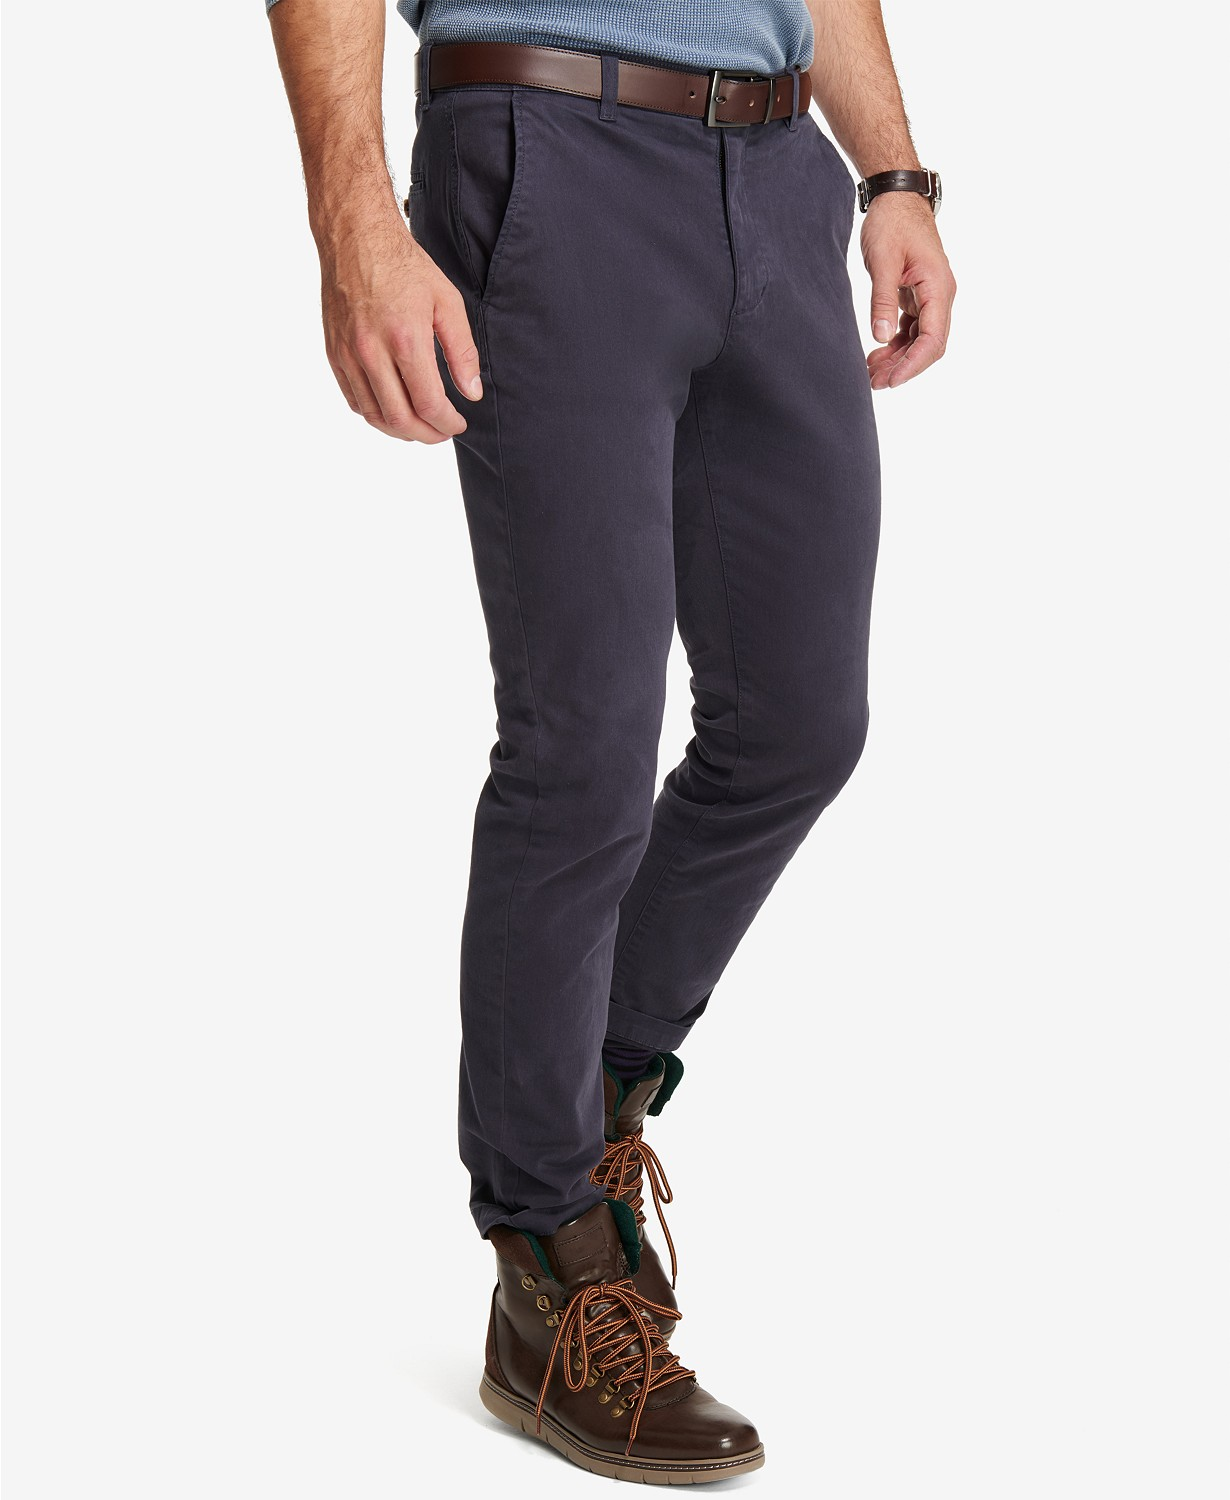 Weatherproof Vintage Men's Stretch Twill Pants